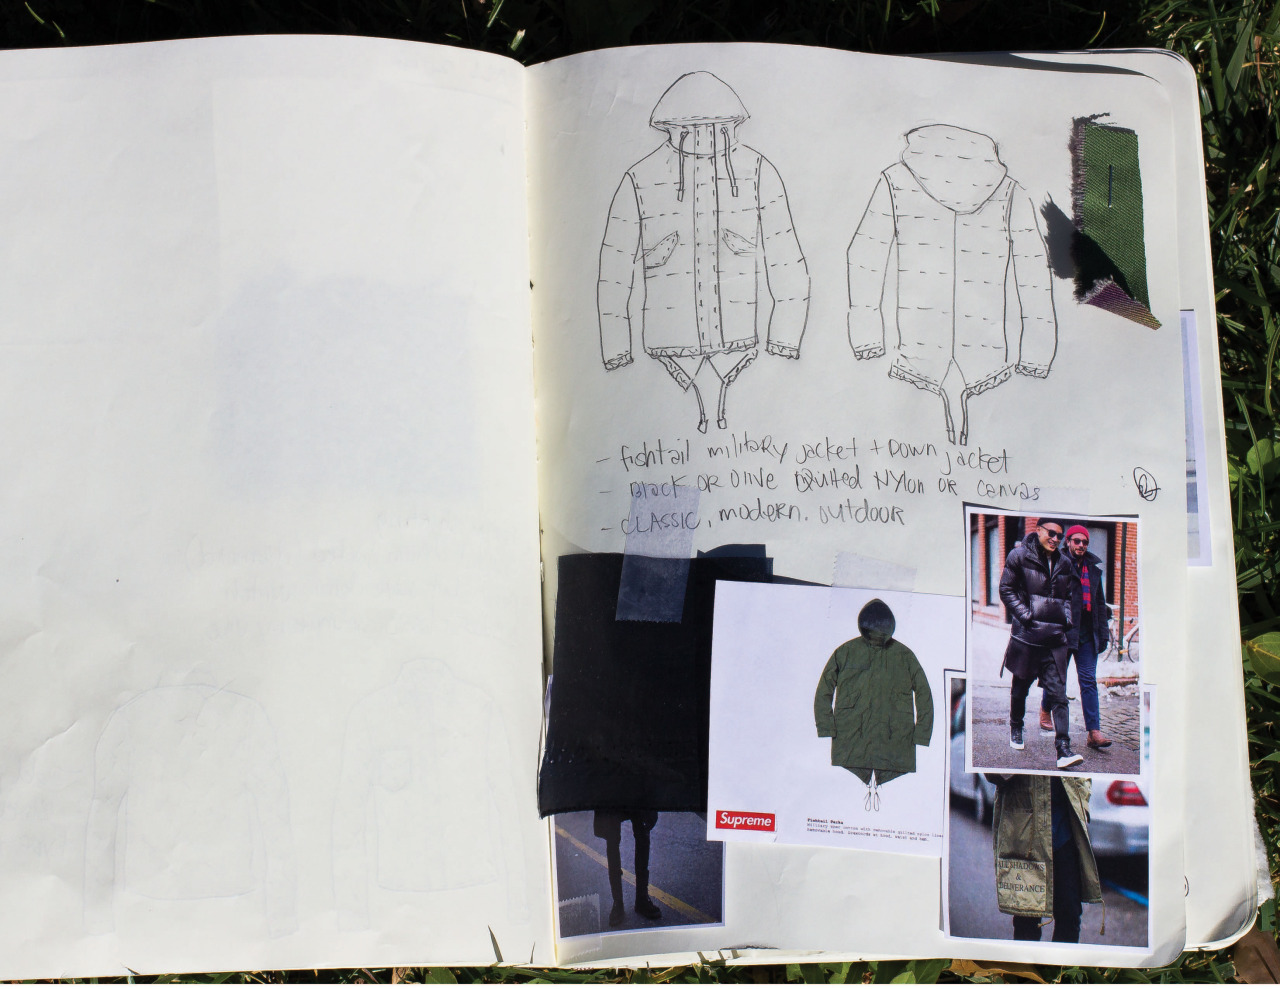 1_alfred_lape_urban_outfitters_sketch_2